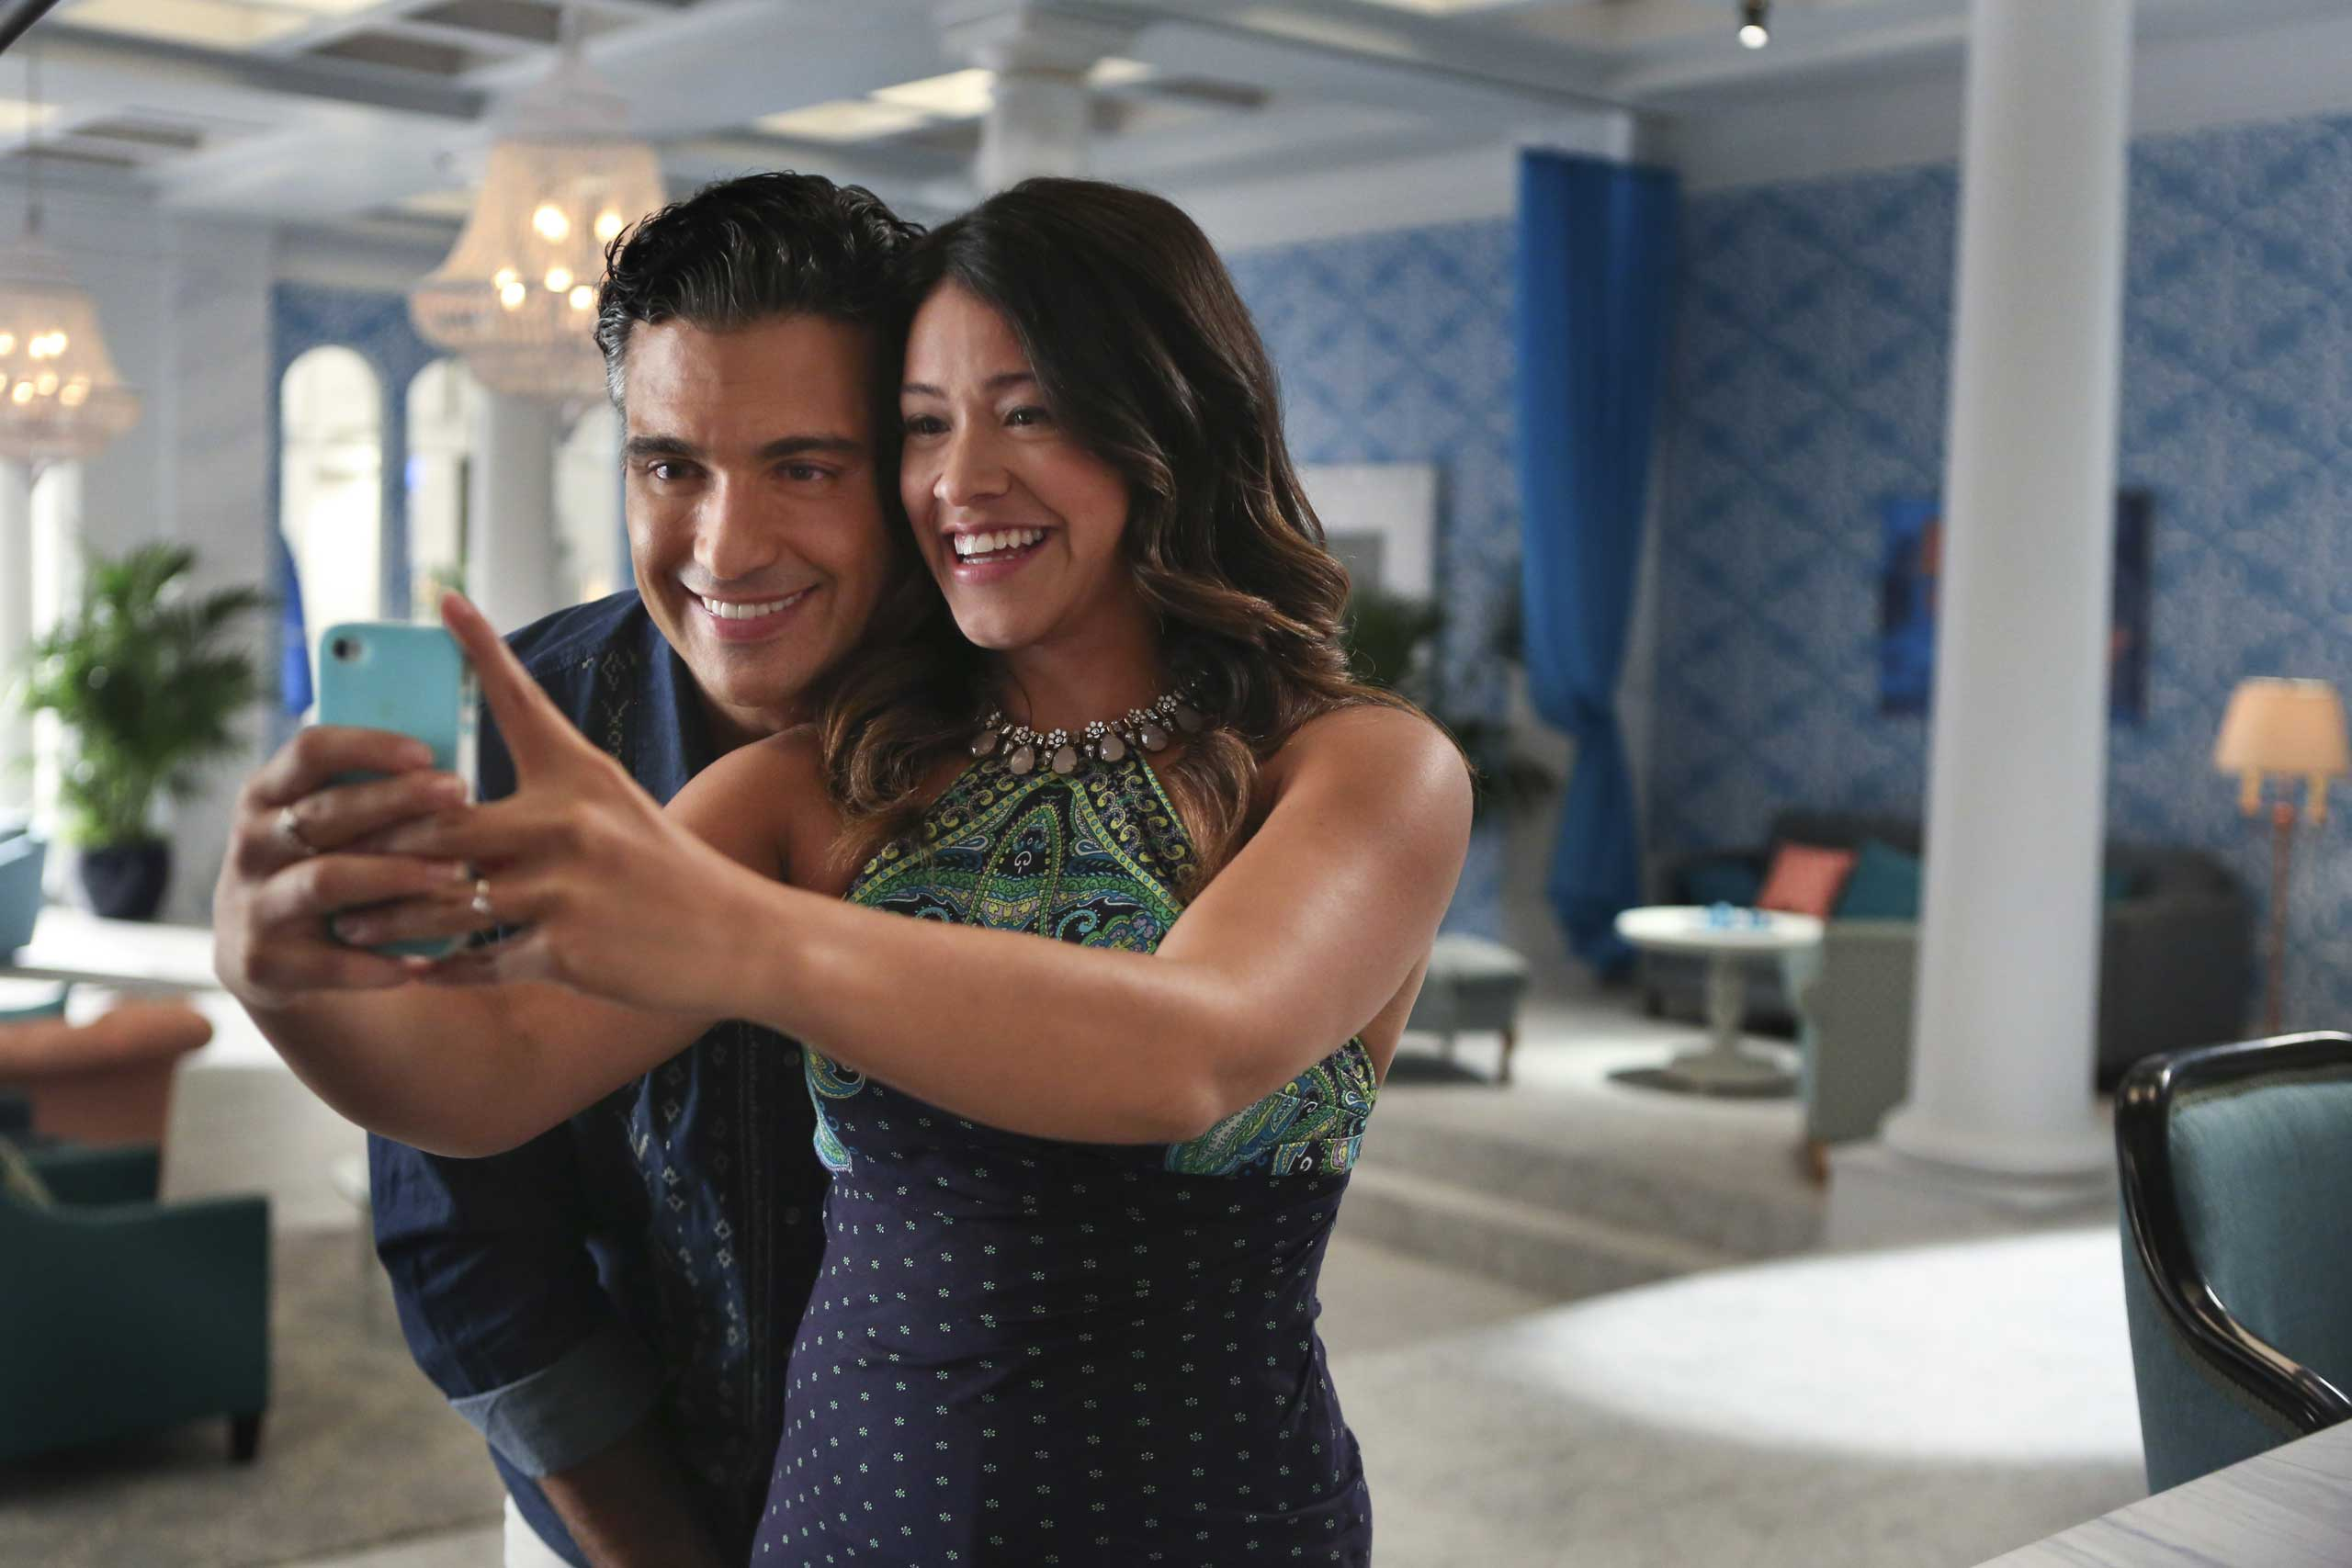 Jaime Camil as Rogelio and Gina Rodriguez as Jane in Jane The Virgin.